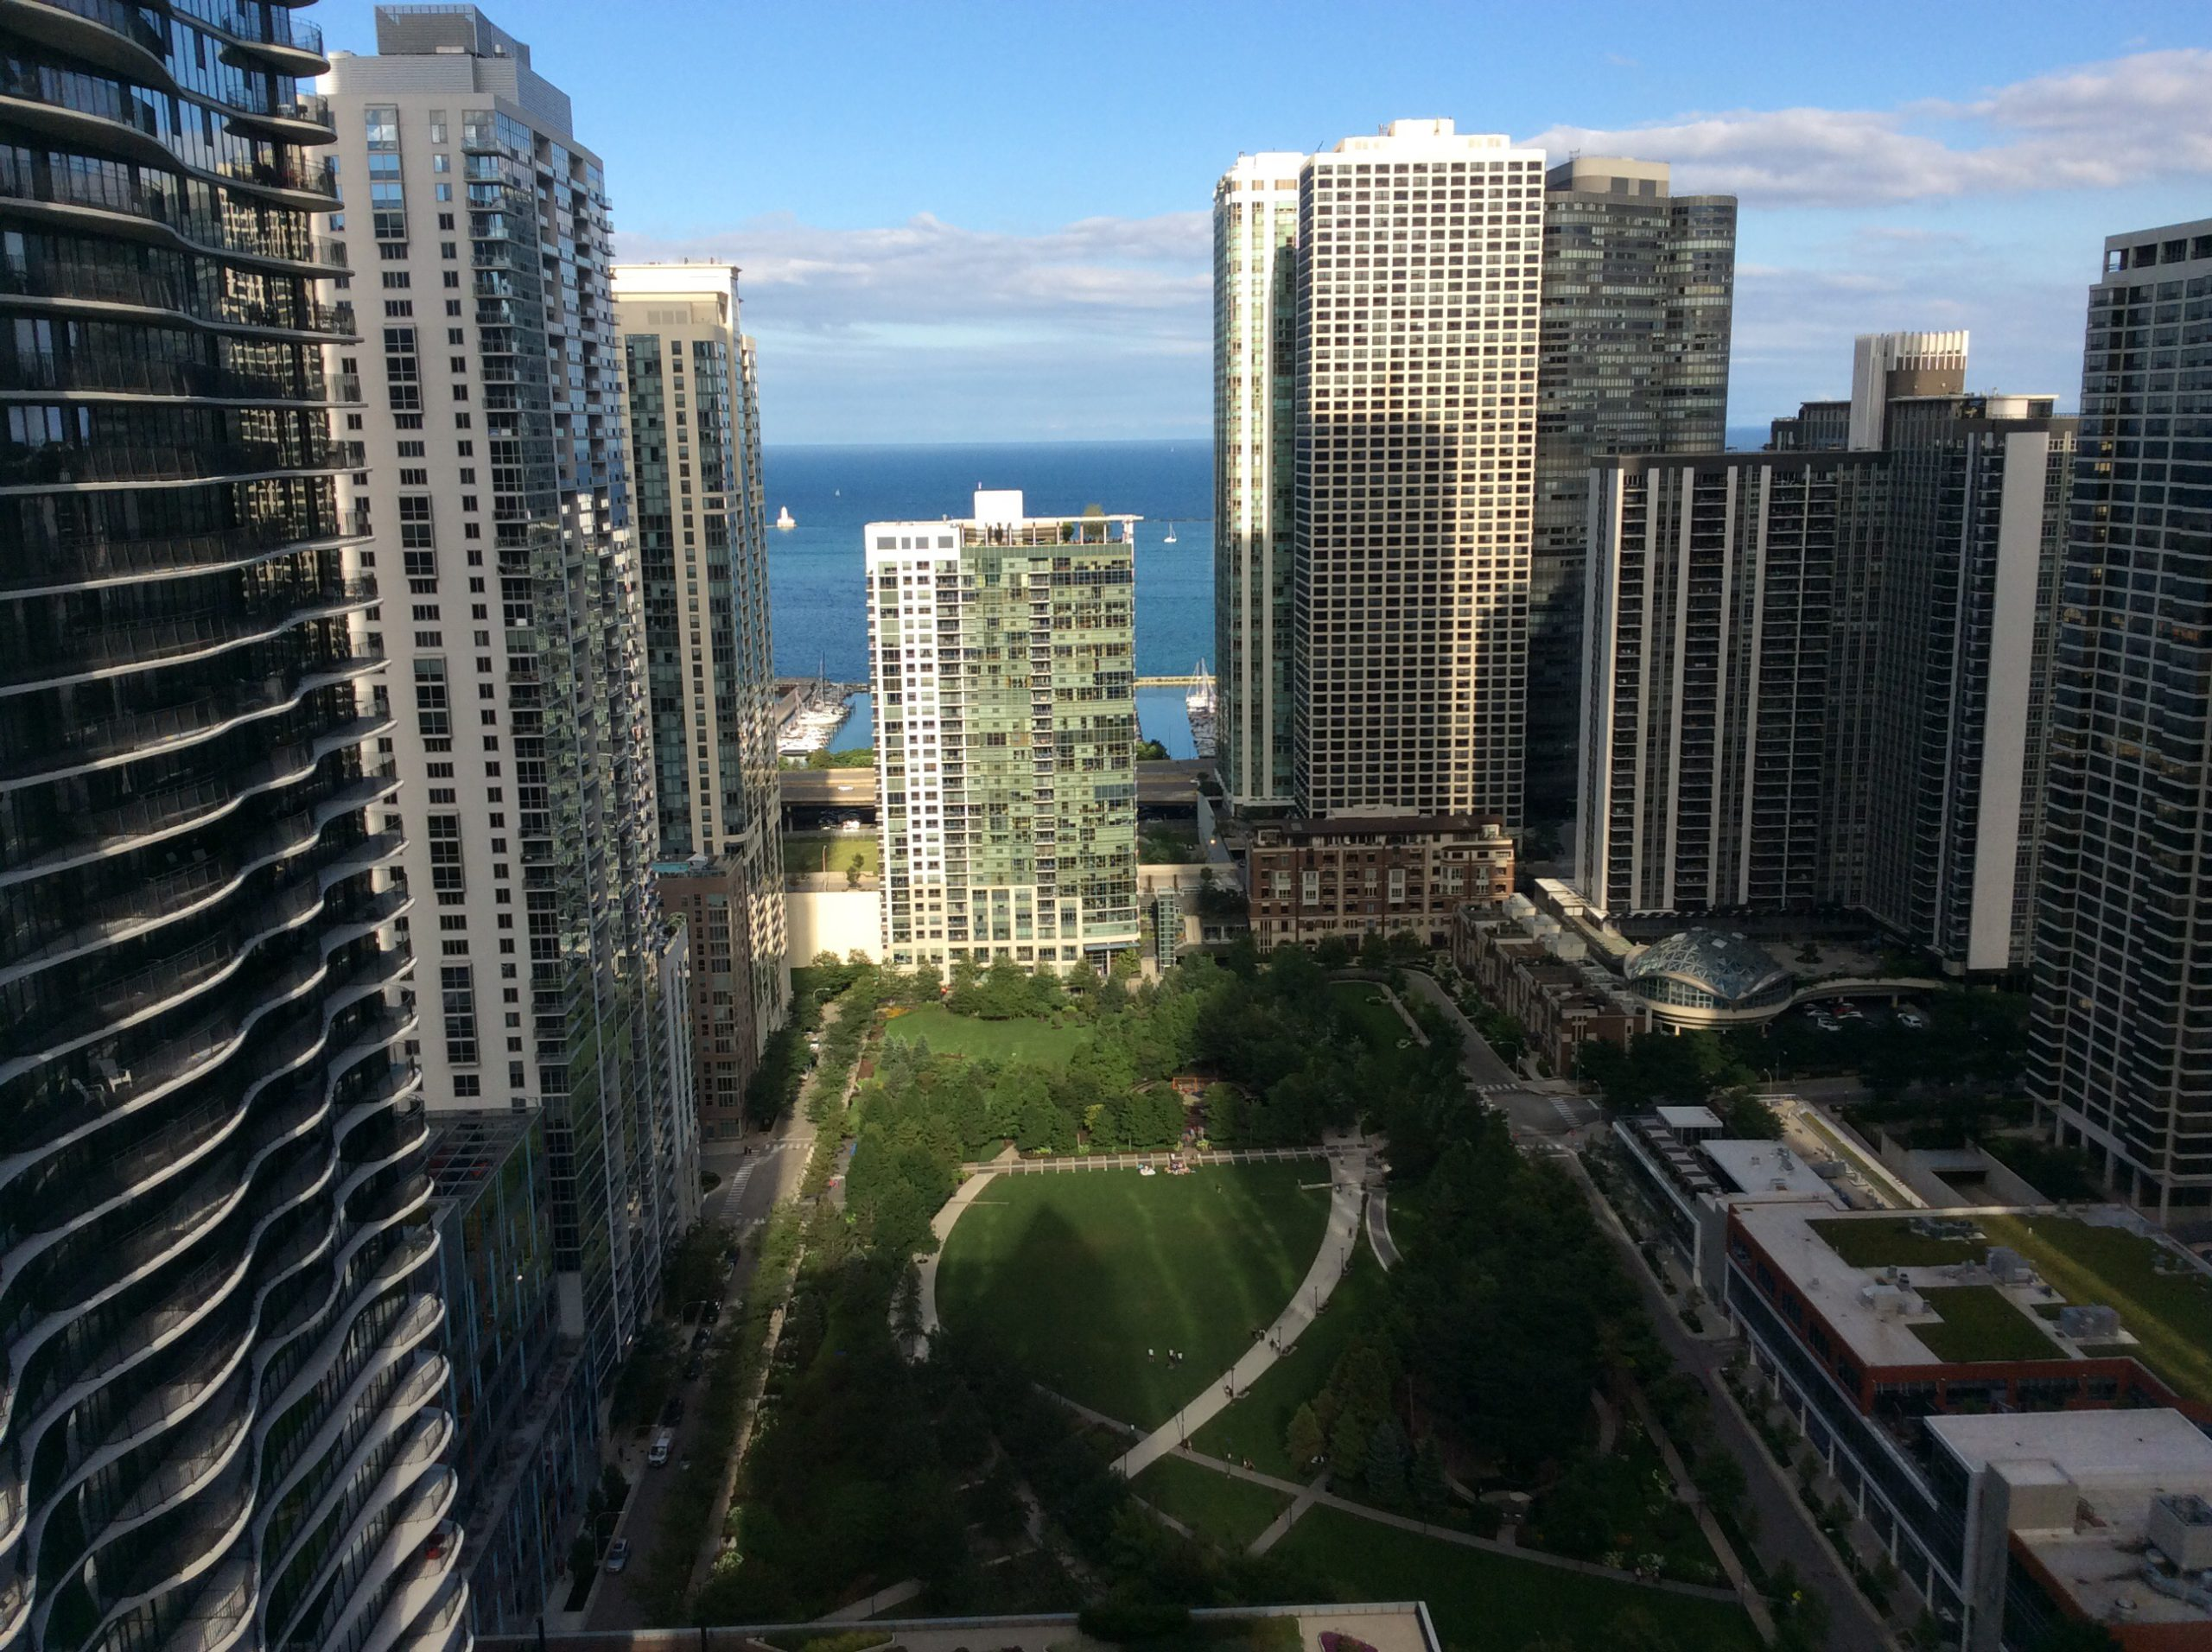 View from the Fairmont Chicago